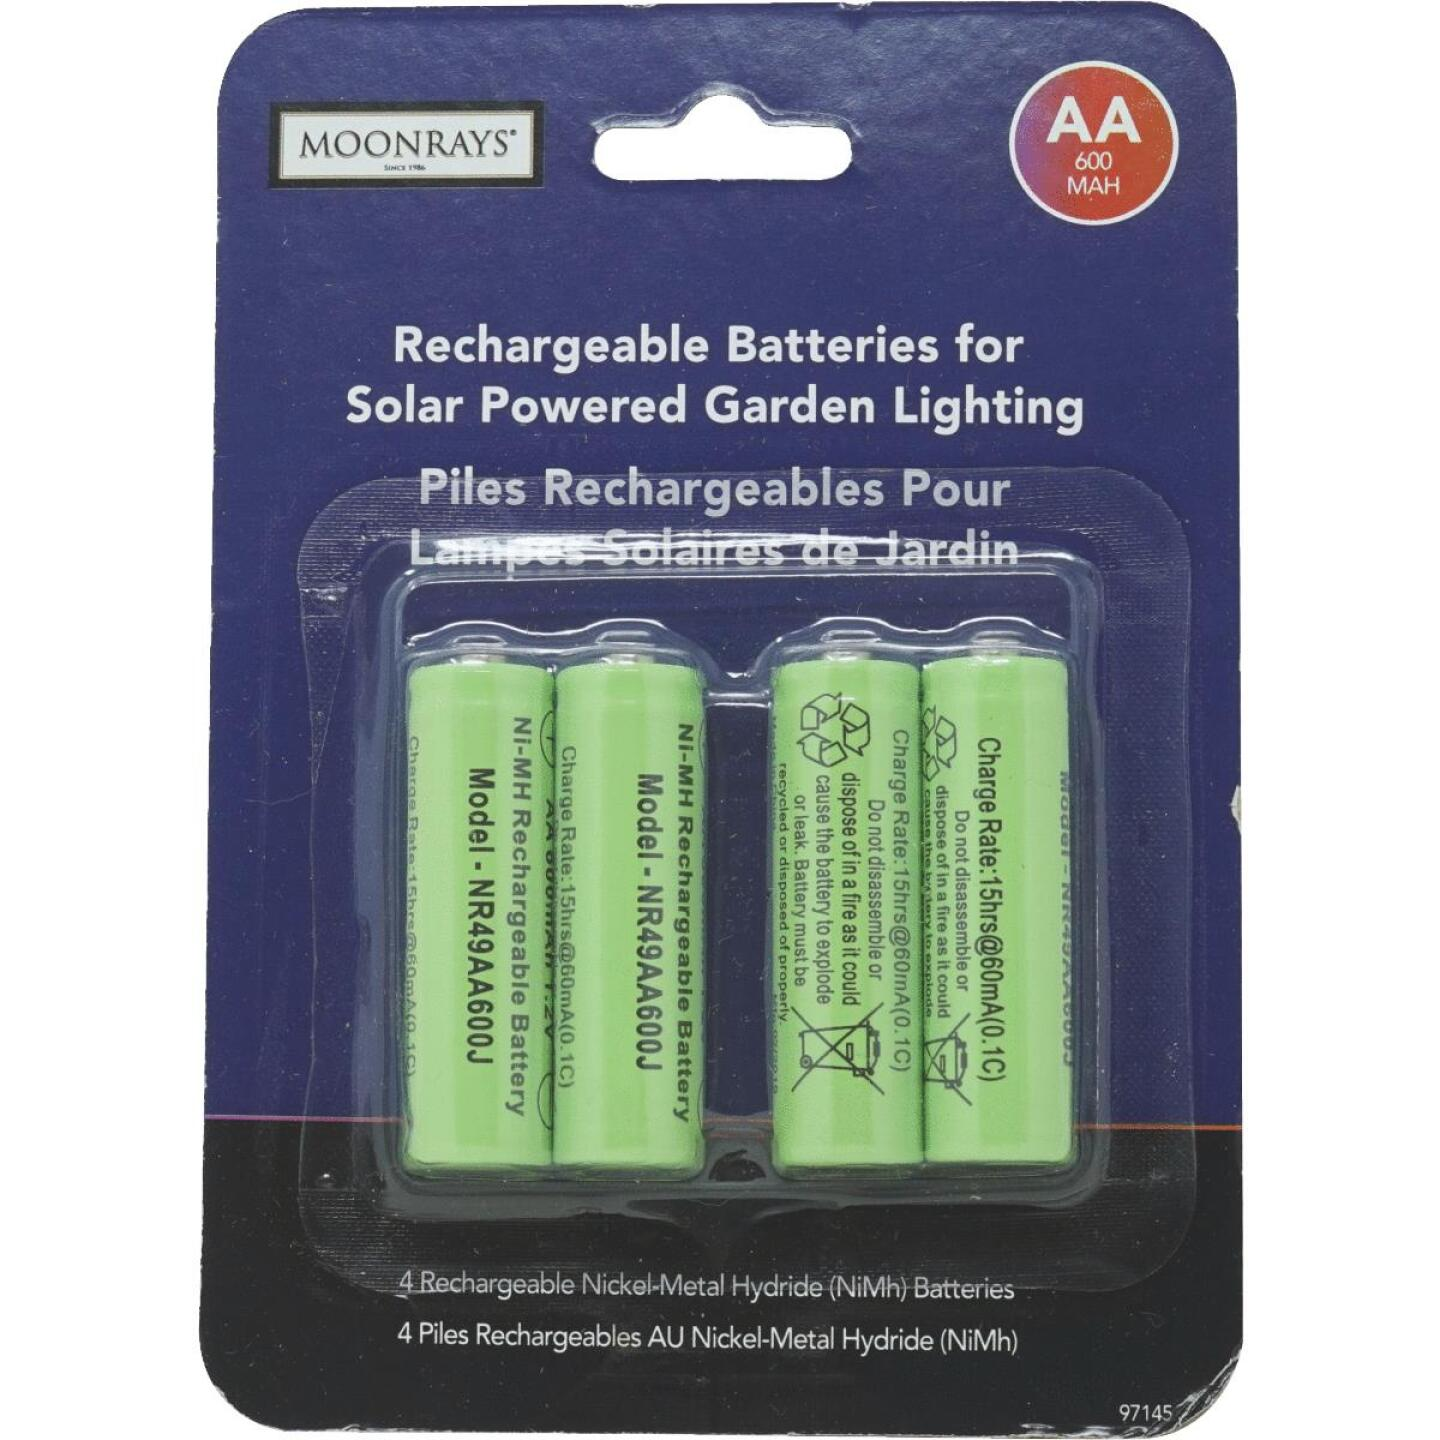 Moonrays Solar Rechargable AA Replacement Battery (4-Pack) Image 2